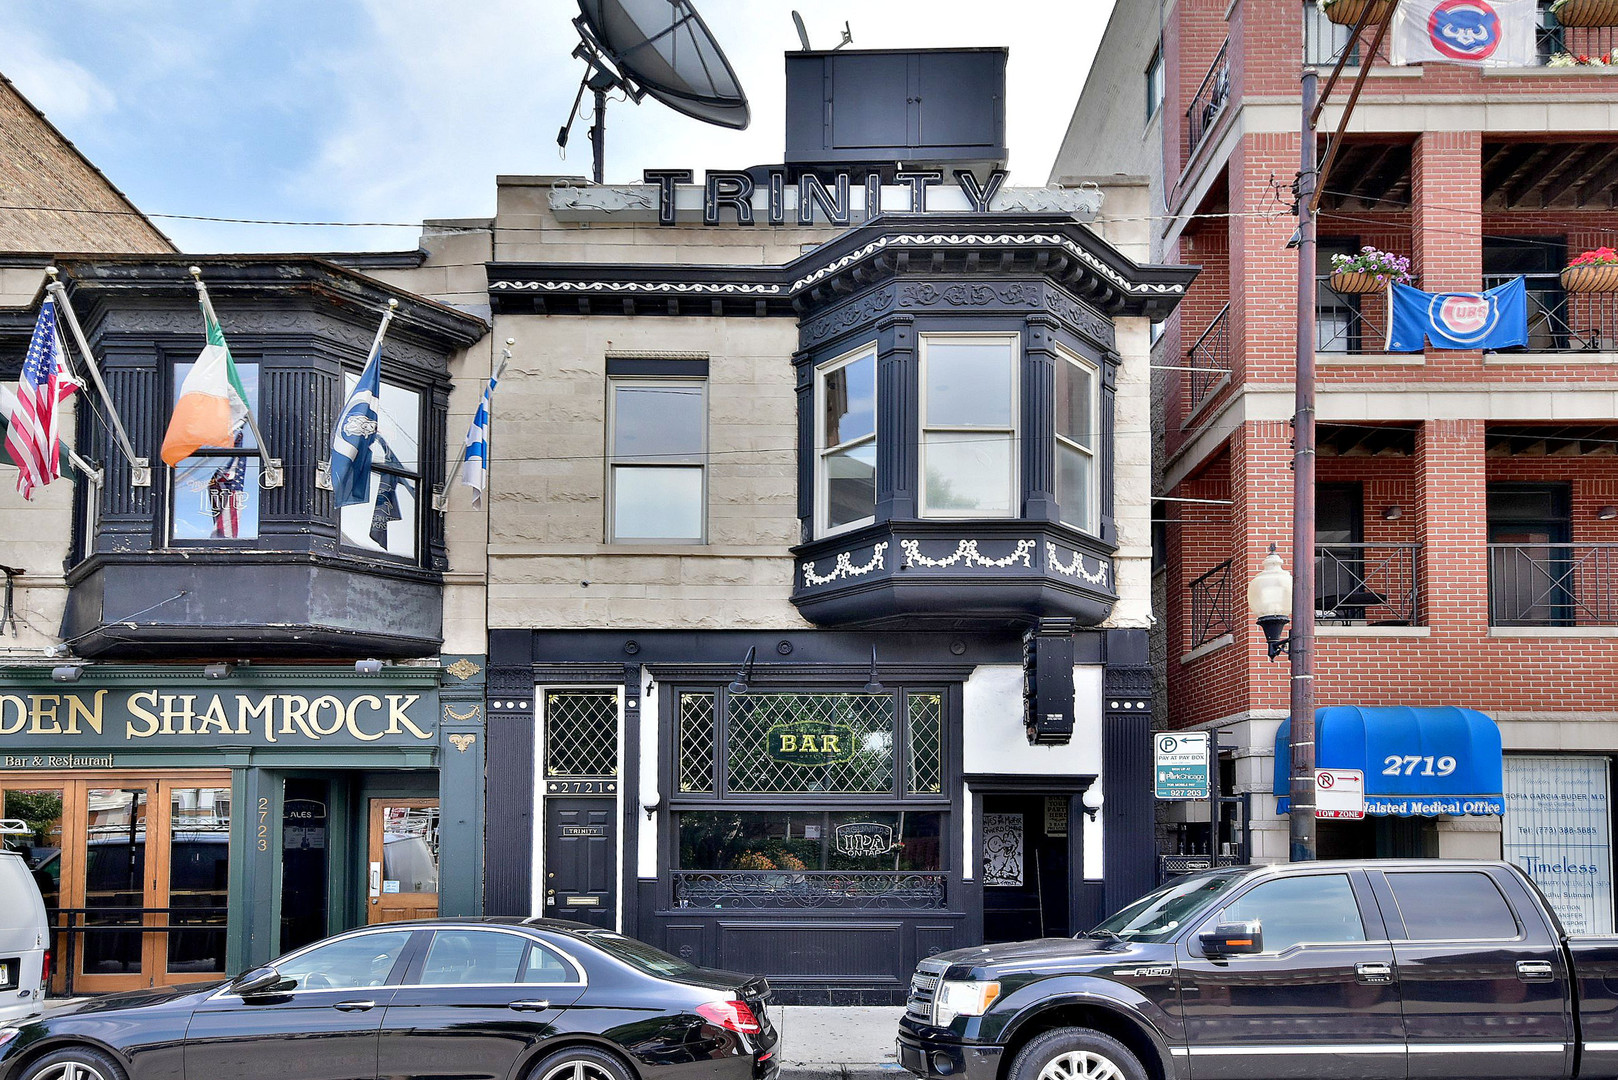 2721 Halsted ,Chicago, Illinois 60614